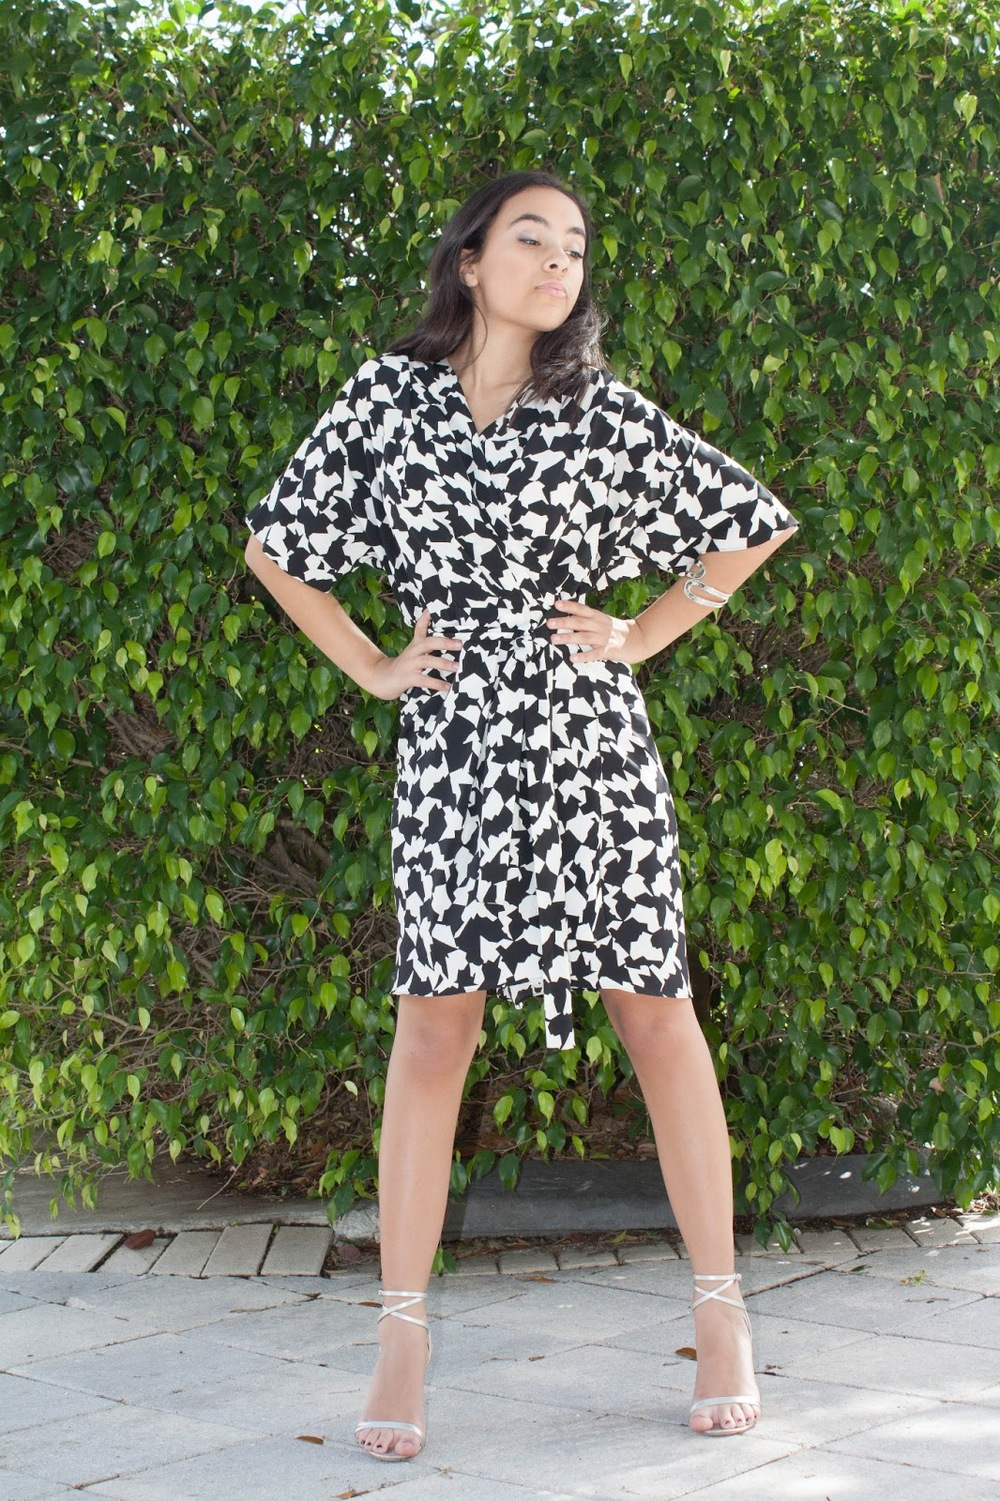 black and white spring dress in front of green bush.jpg